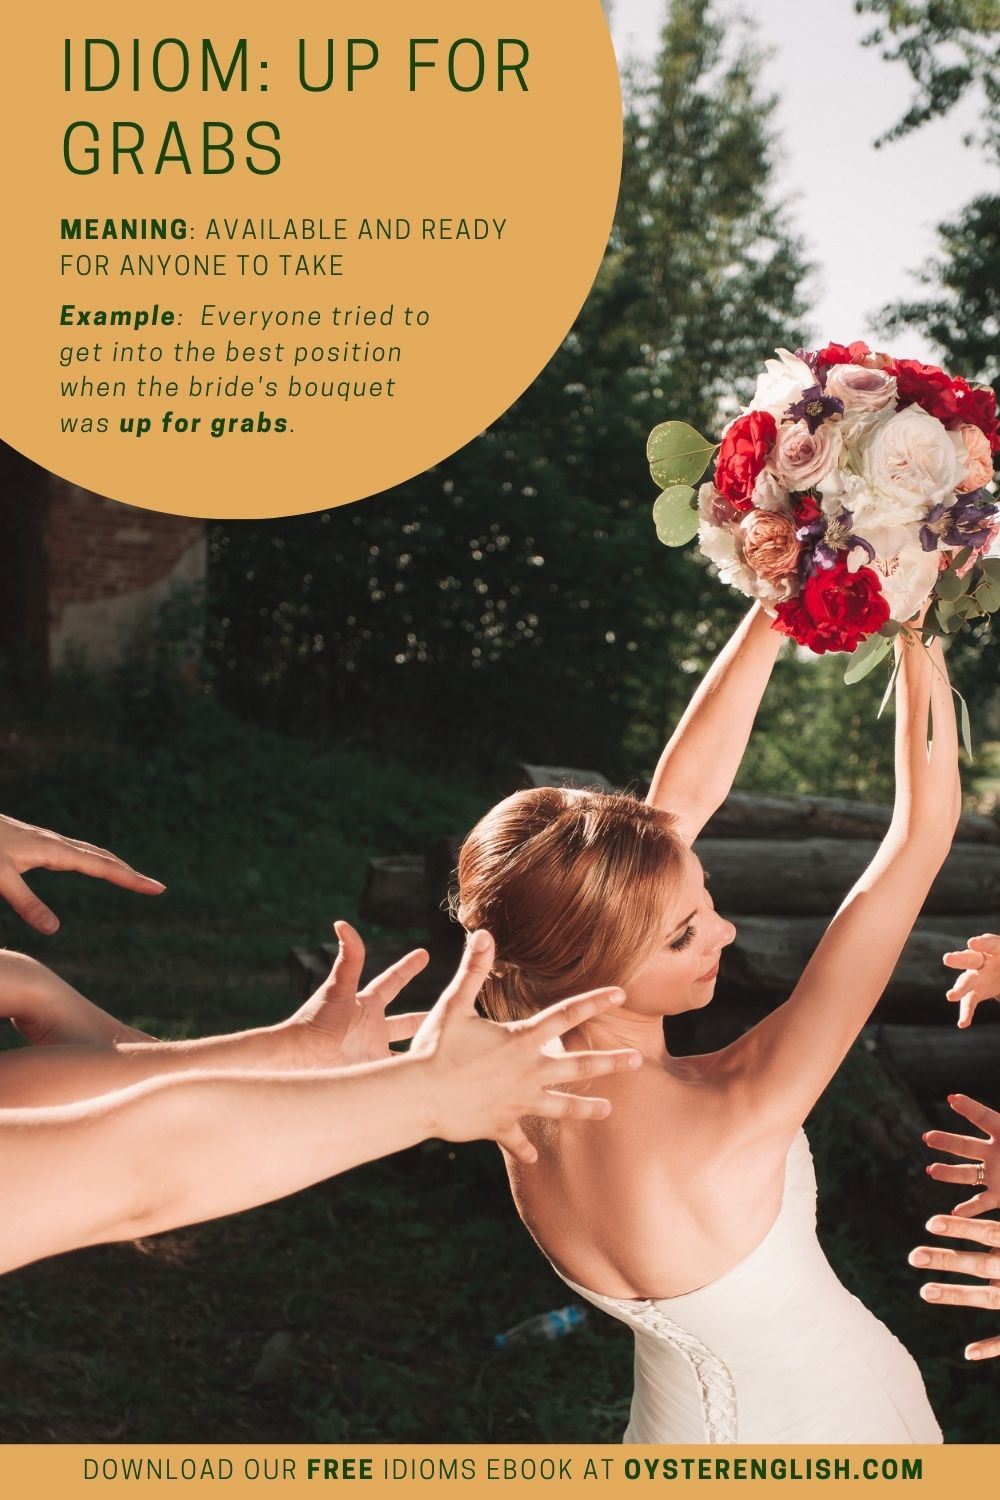 The bride holds her bouquet in the air and the wedding guests' hands are stretched out, ready to catch it.